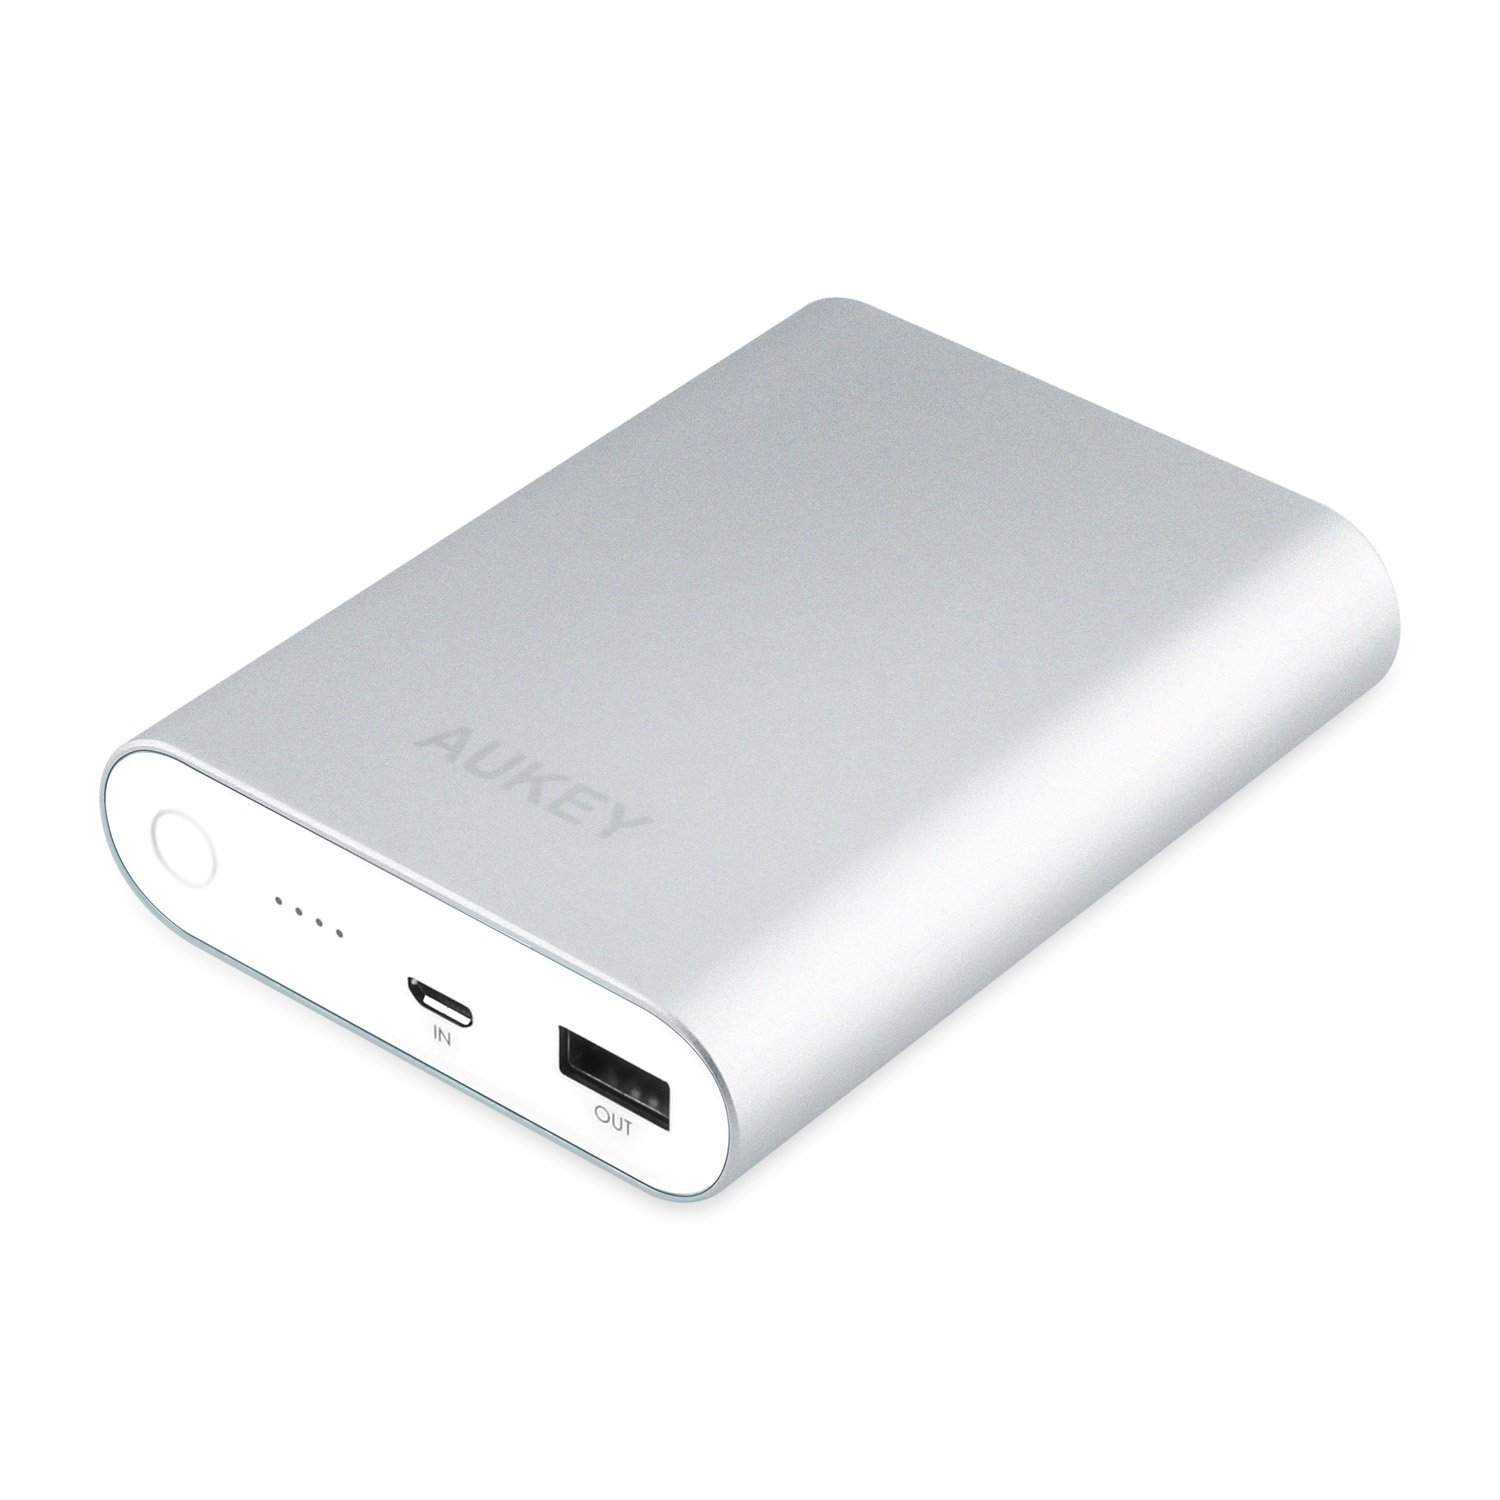 Aukey Quick Charge 2.0 10000mAh Portable External Battery Fast Charger